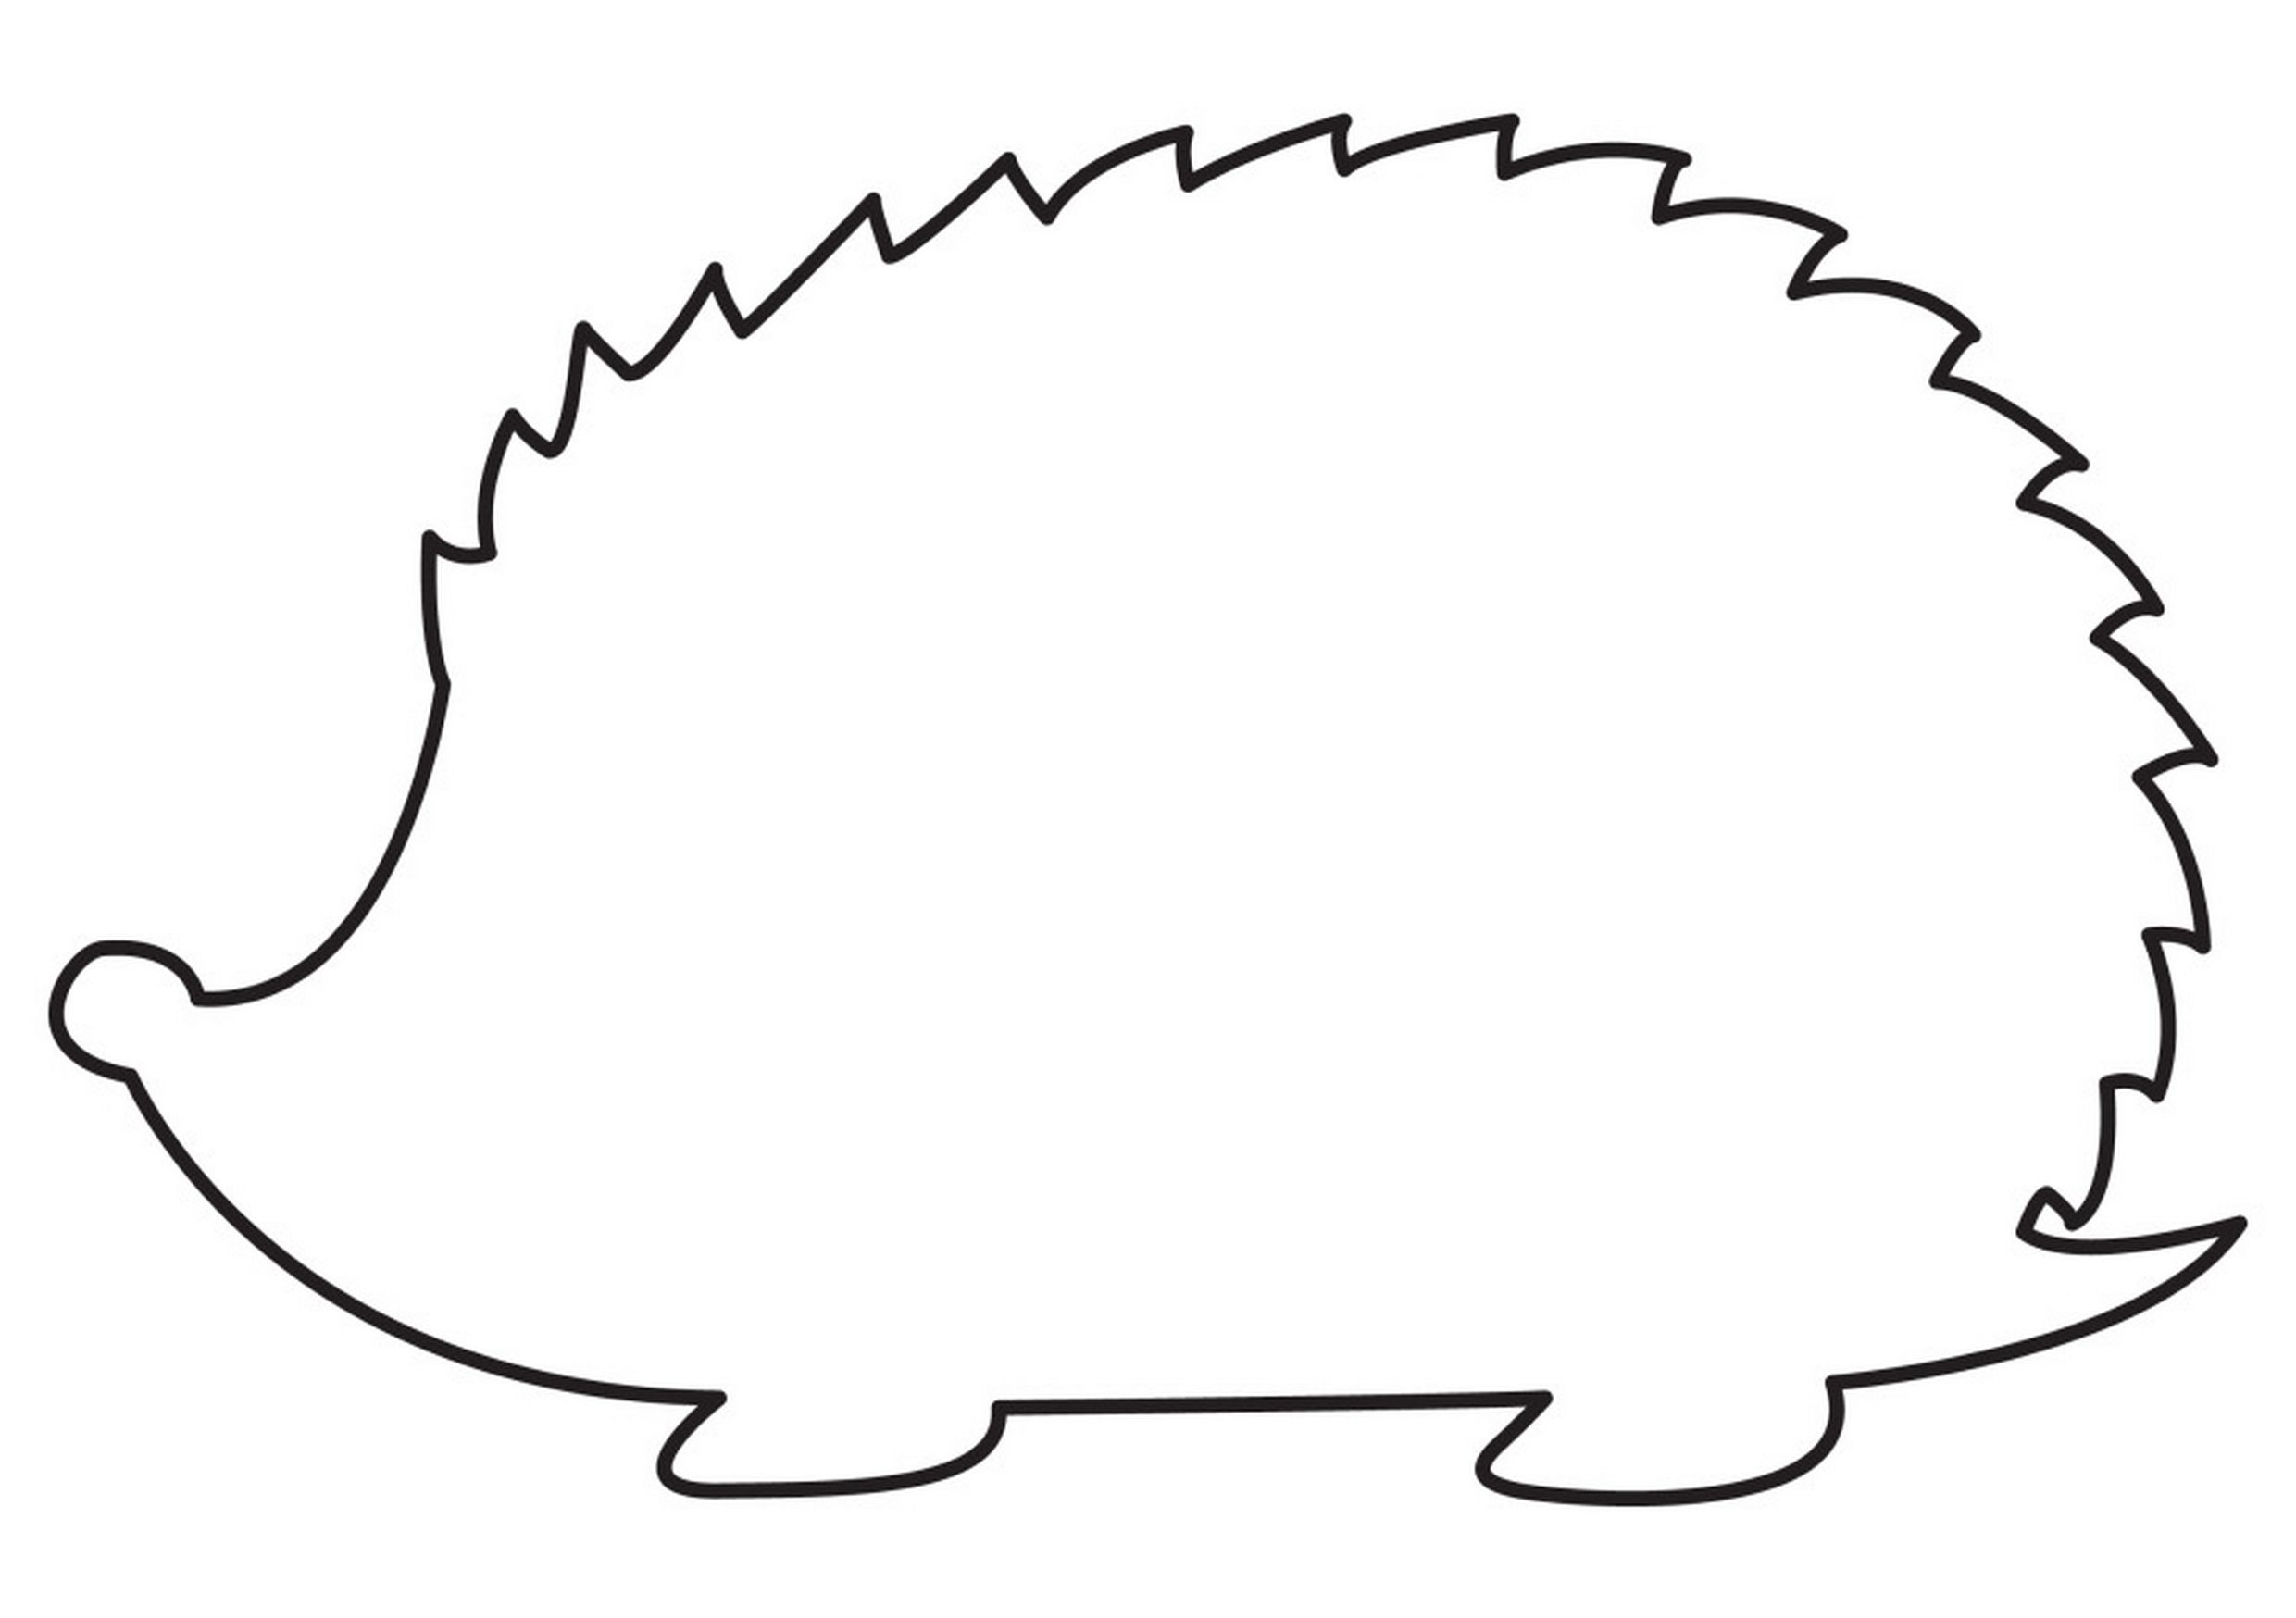 Hedgehog clipart simple. How to sketch a